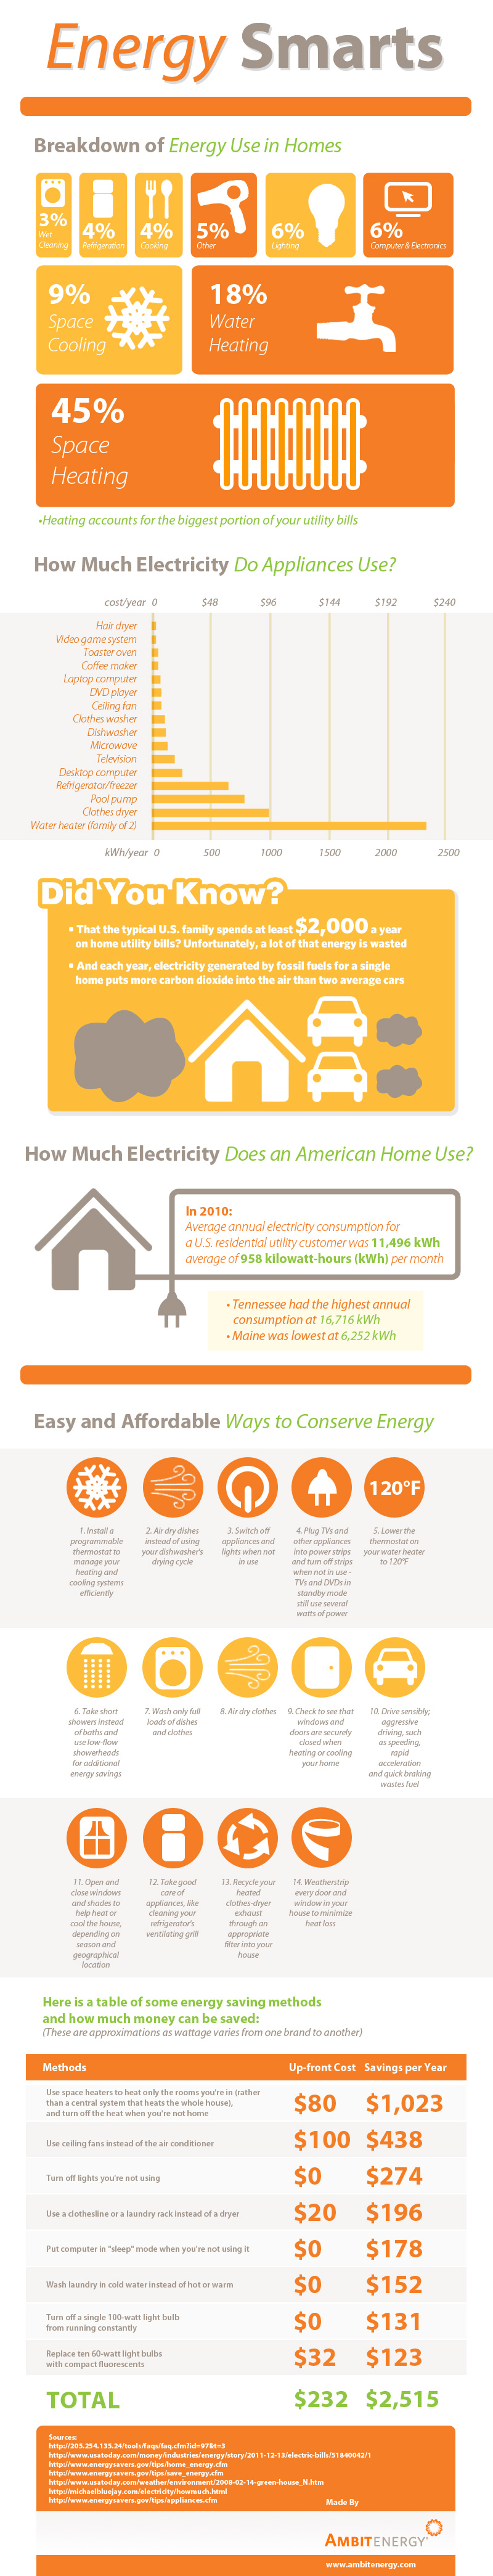 Energy Smarts: Breakdown of Energy Use in Homes